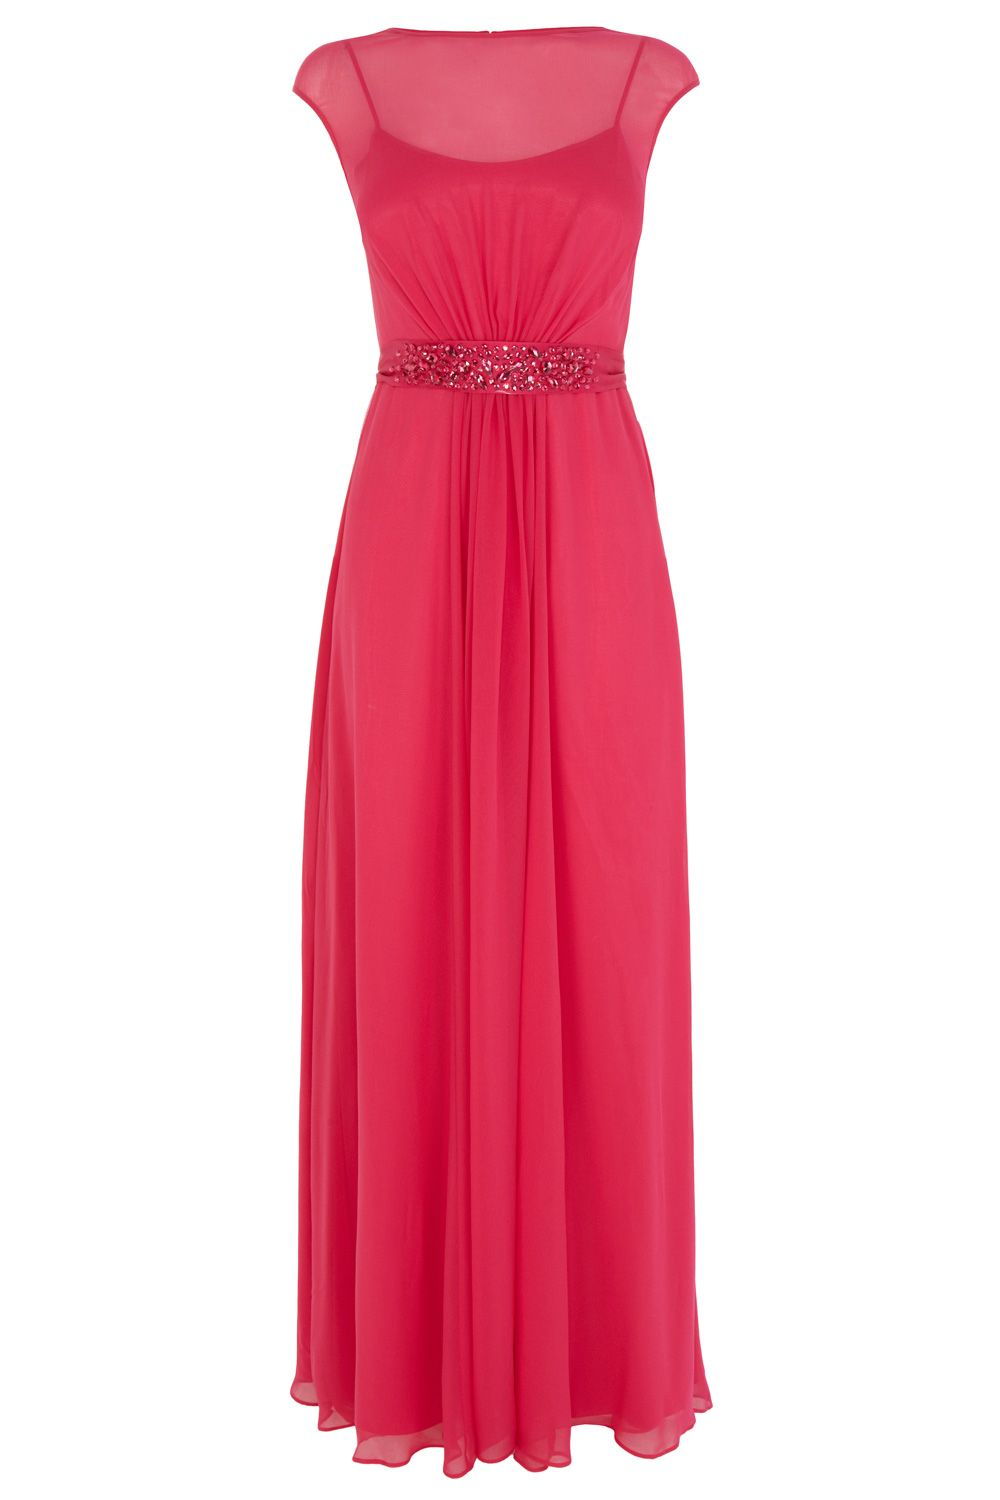 Lori Lee Embellished Waist Petite Maxi Dress